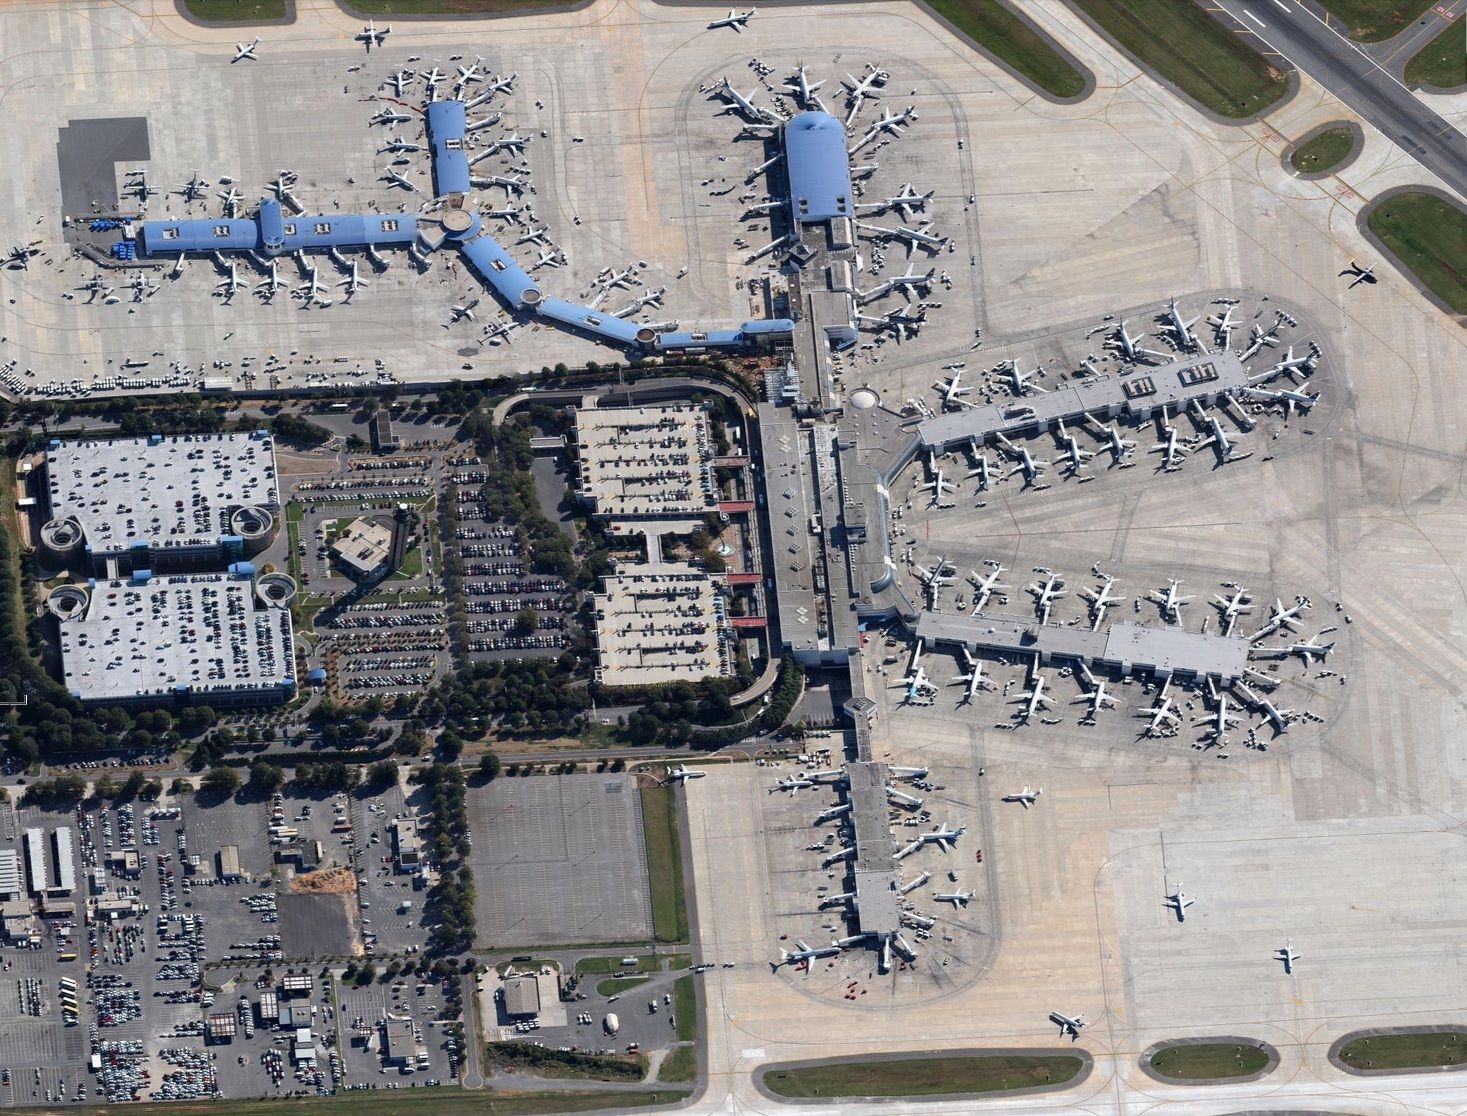 CharlotteDouglas Intl CLT Airport Terminal Aerial View In - Charlotte usa airport map